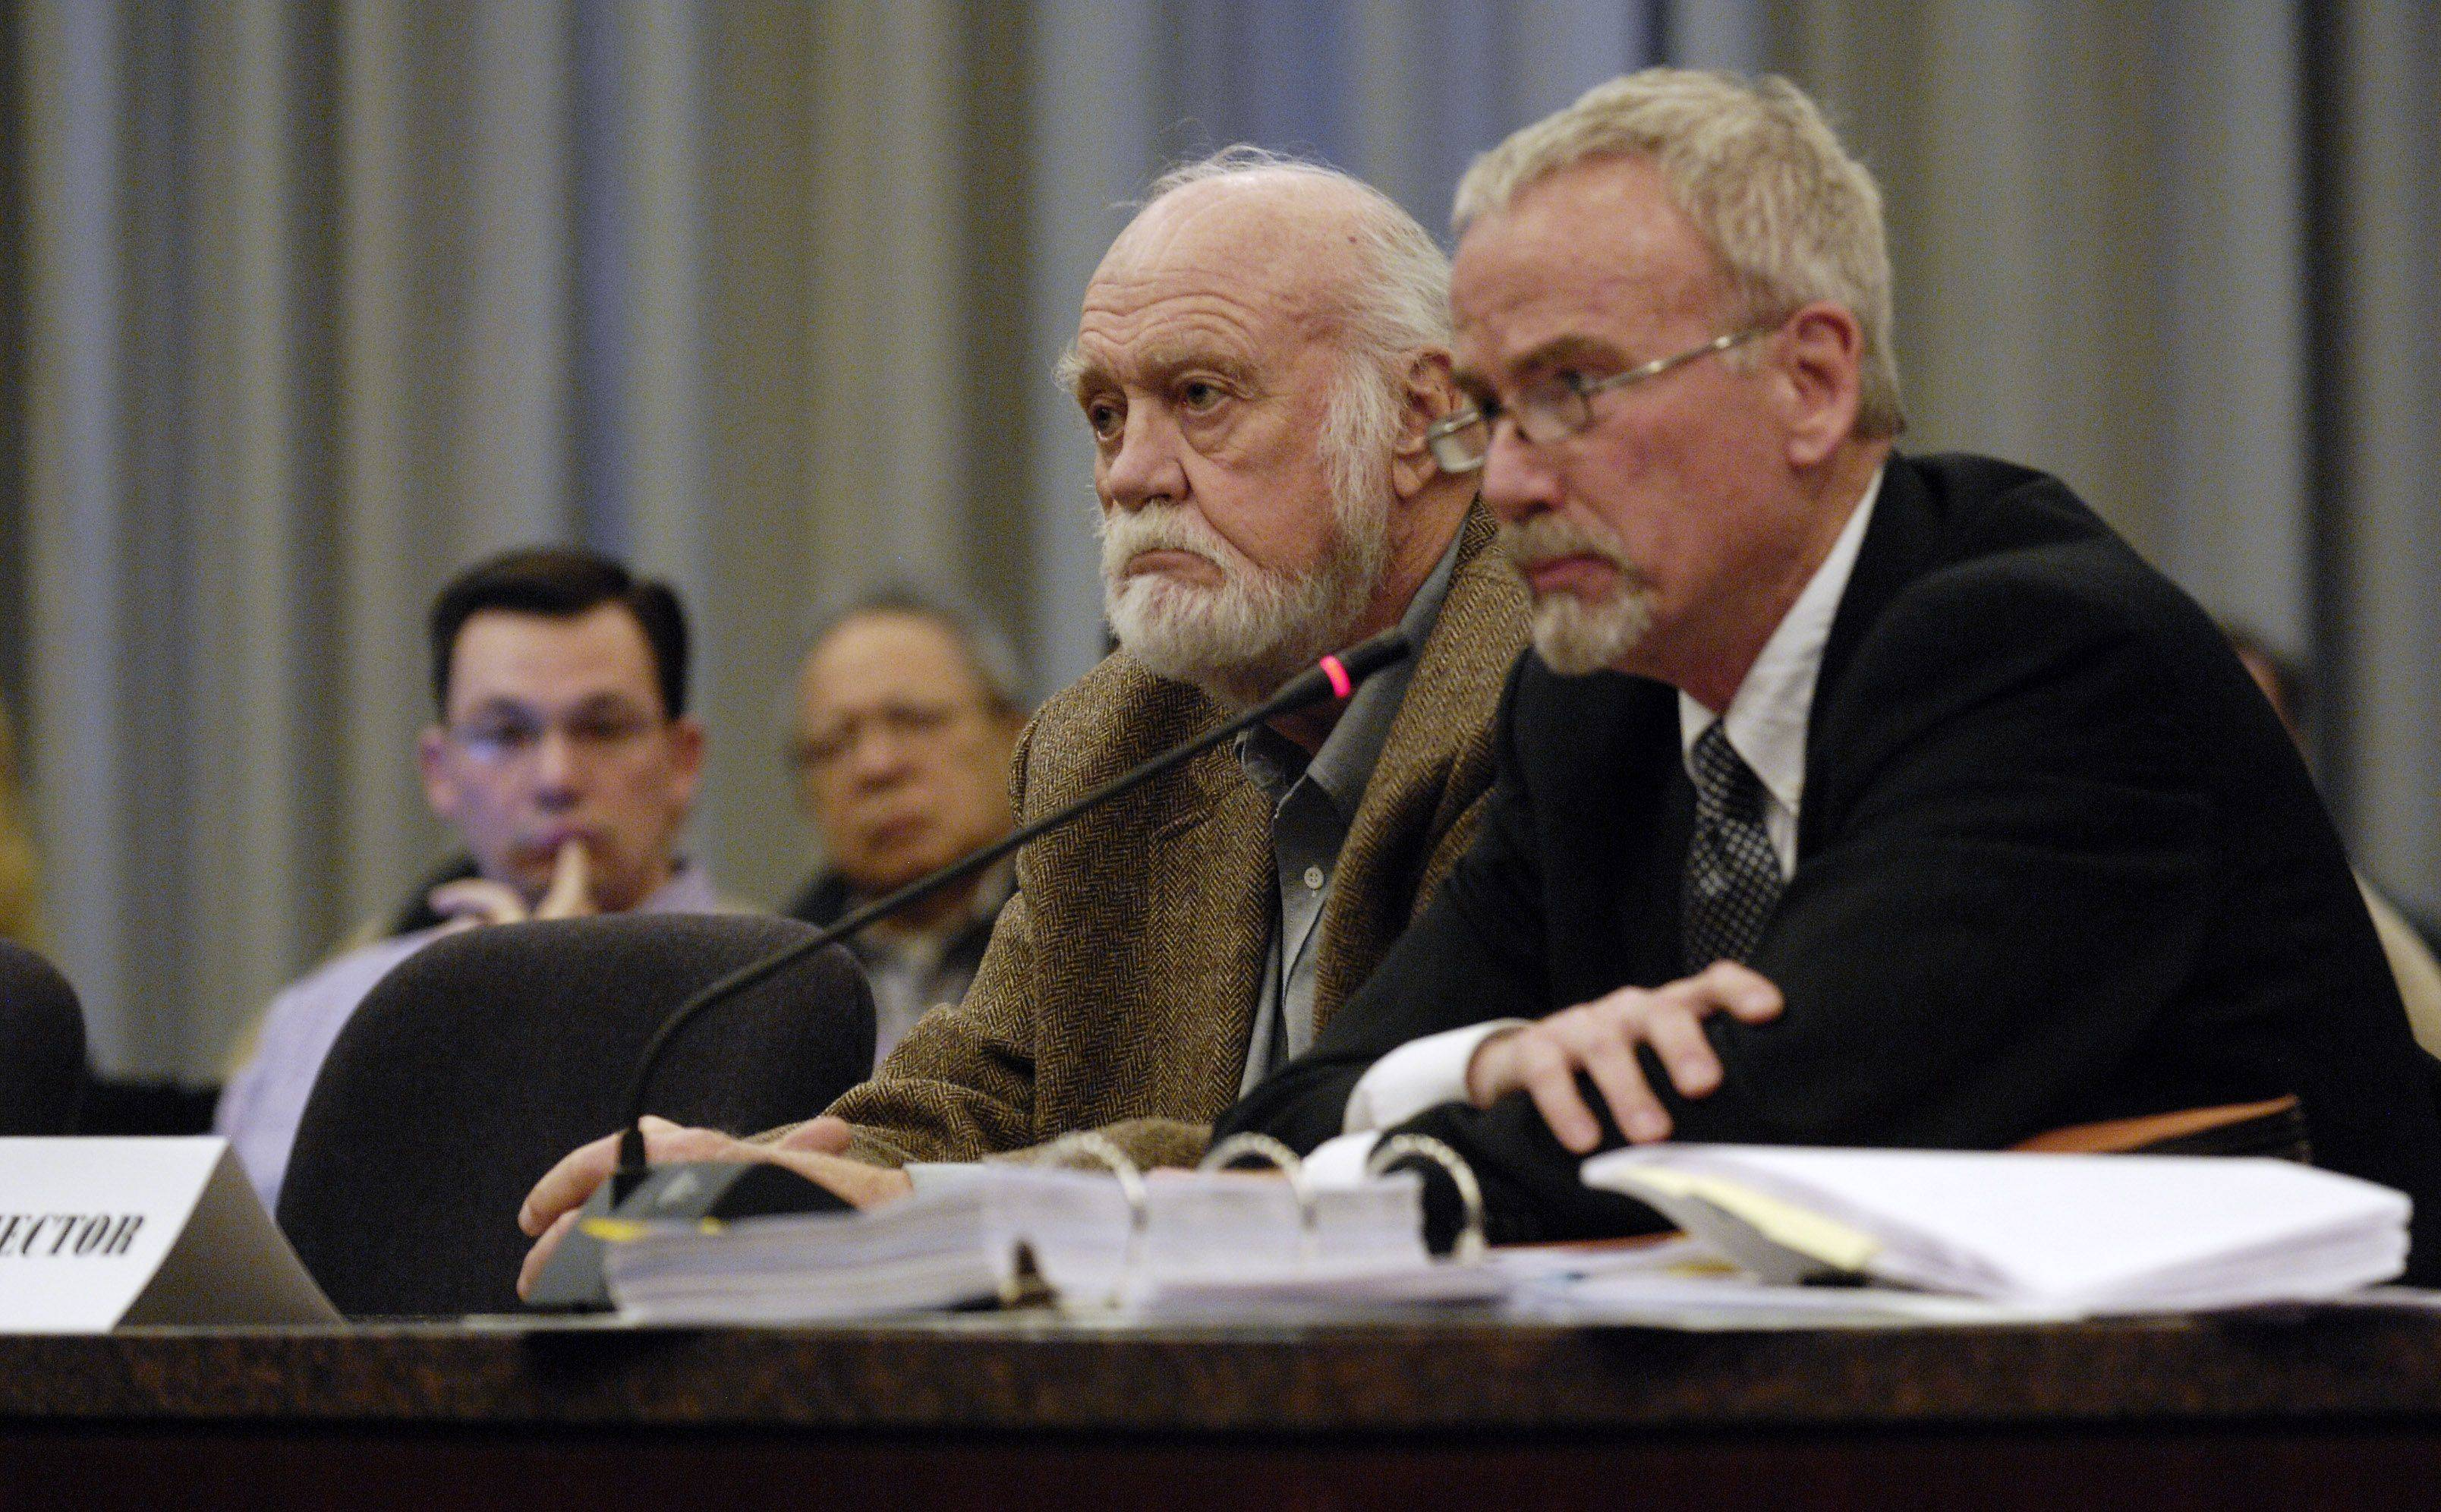 Objector William Dawe and his attorney Kevin McQuillan attend a Tuesday hearing of Naperville's Electoral Board on an objection to a referendum on proposed smart meters.